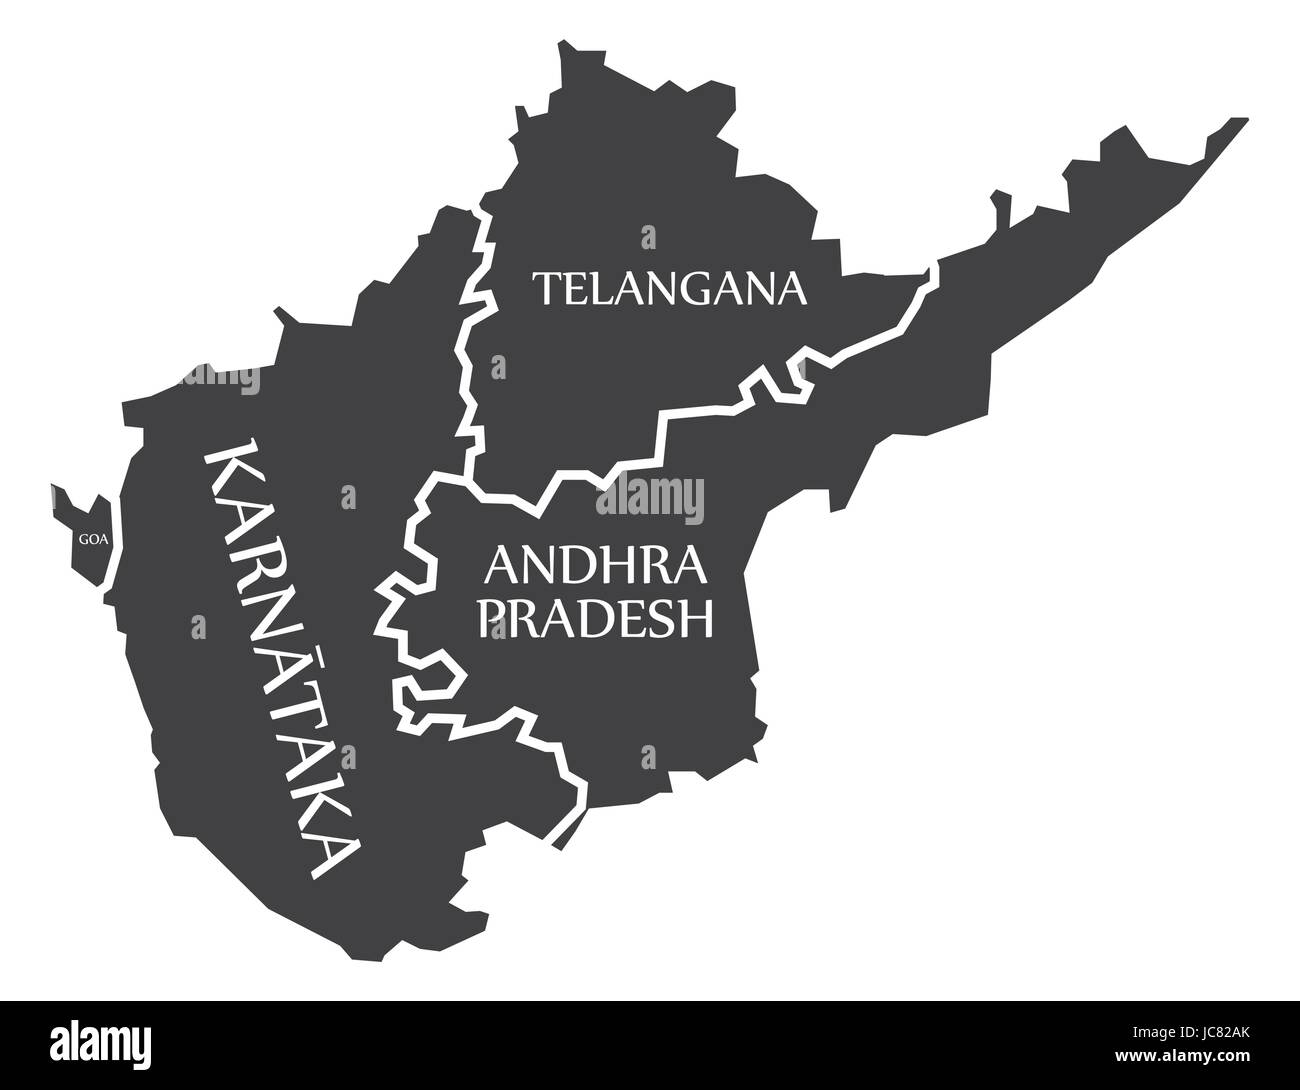 outline telangana andhra pradesh map Andhra Pradesh Map High Resolution Stock Photography And Images outline telangana andhra pradesh map